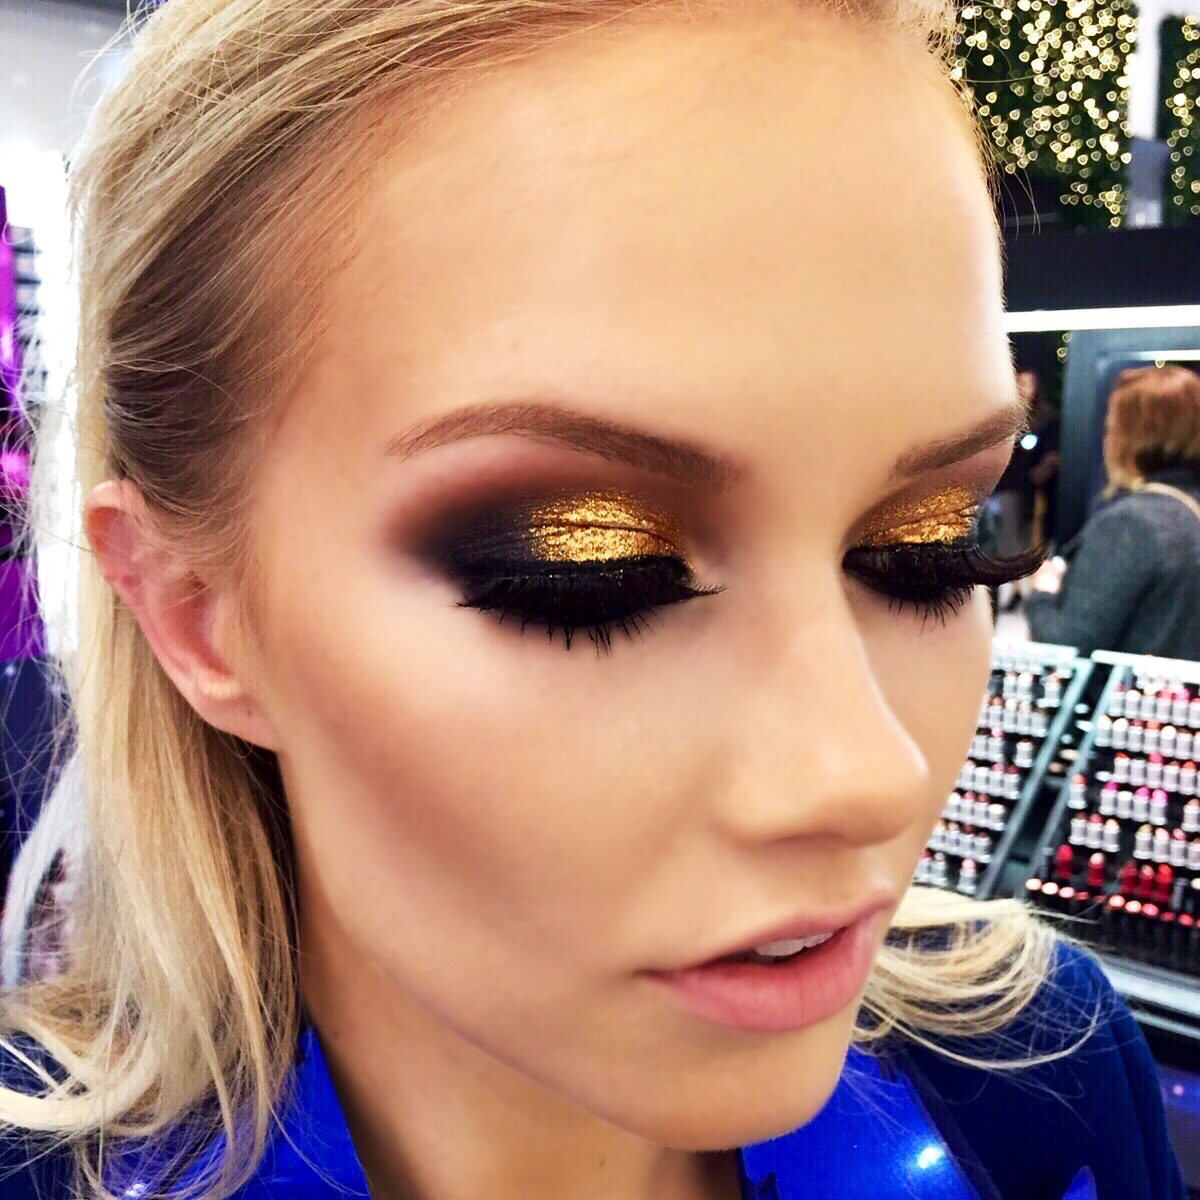 The makeupartist Kerry White who gave me this sparkly look - check out her instagram @_makeupbykerry